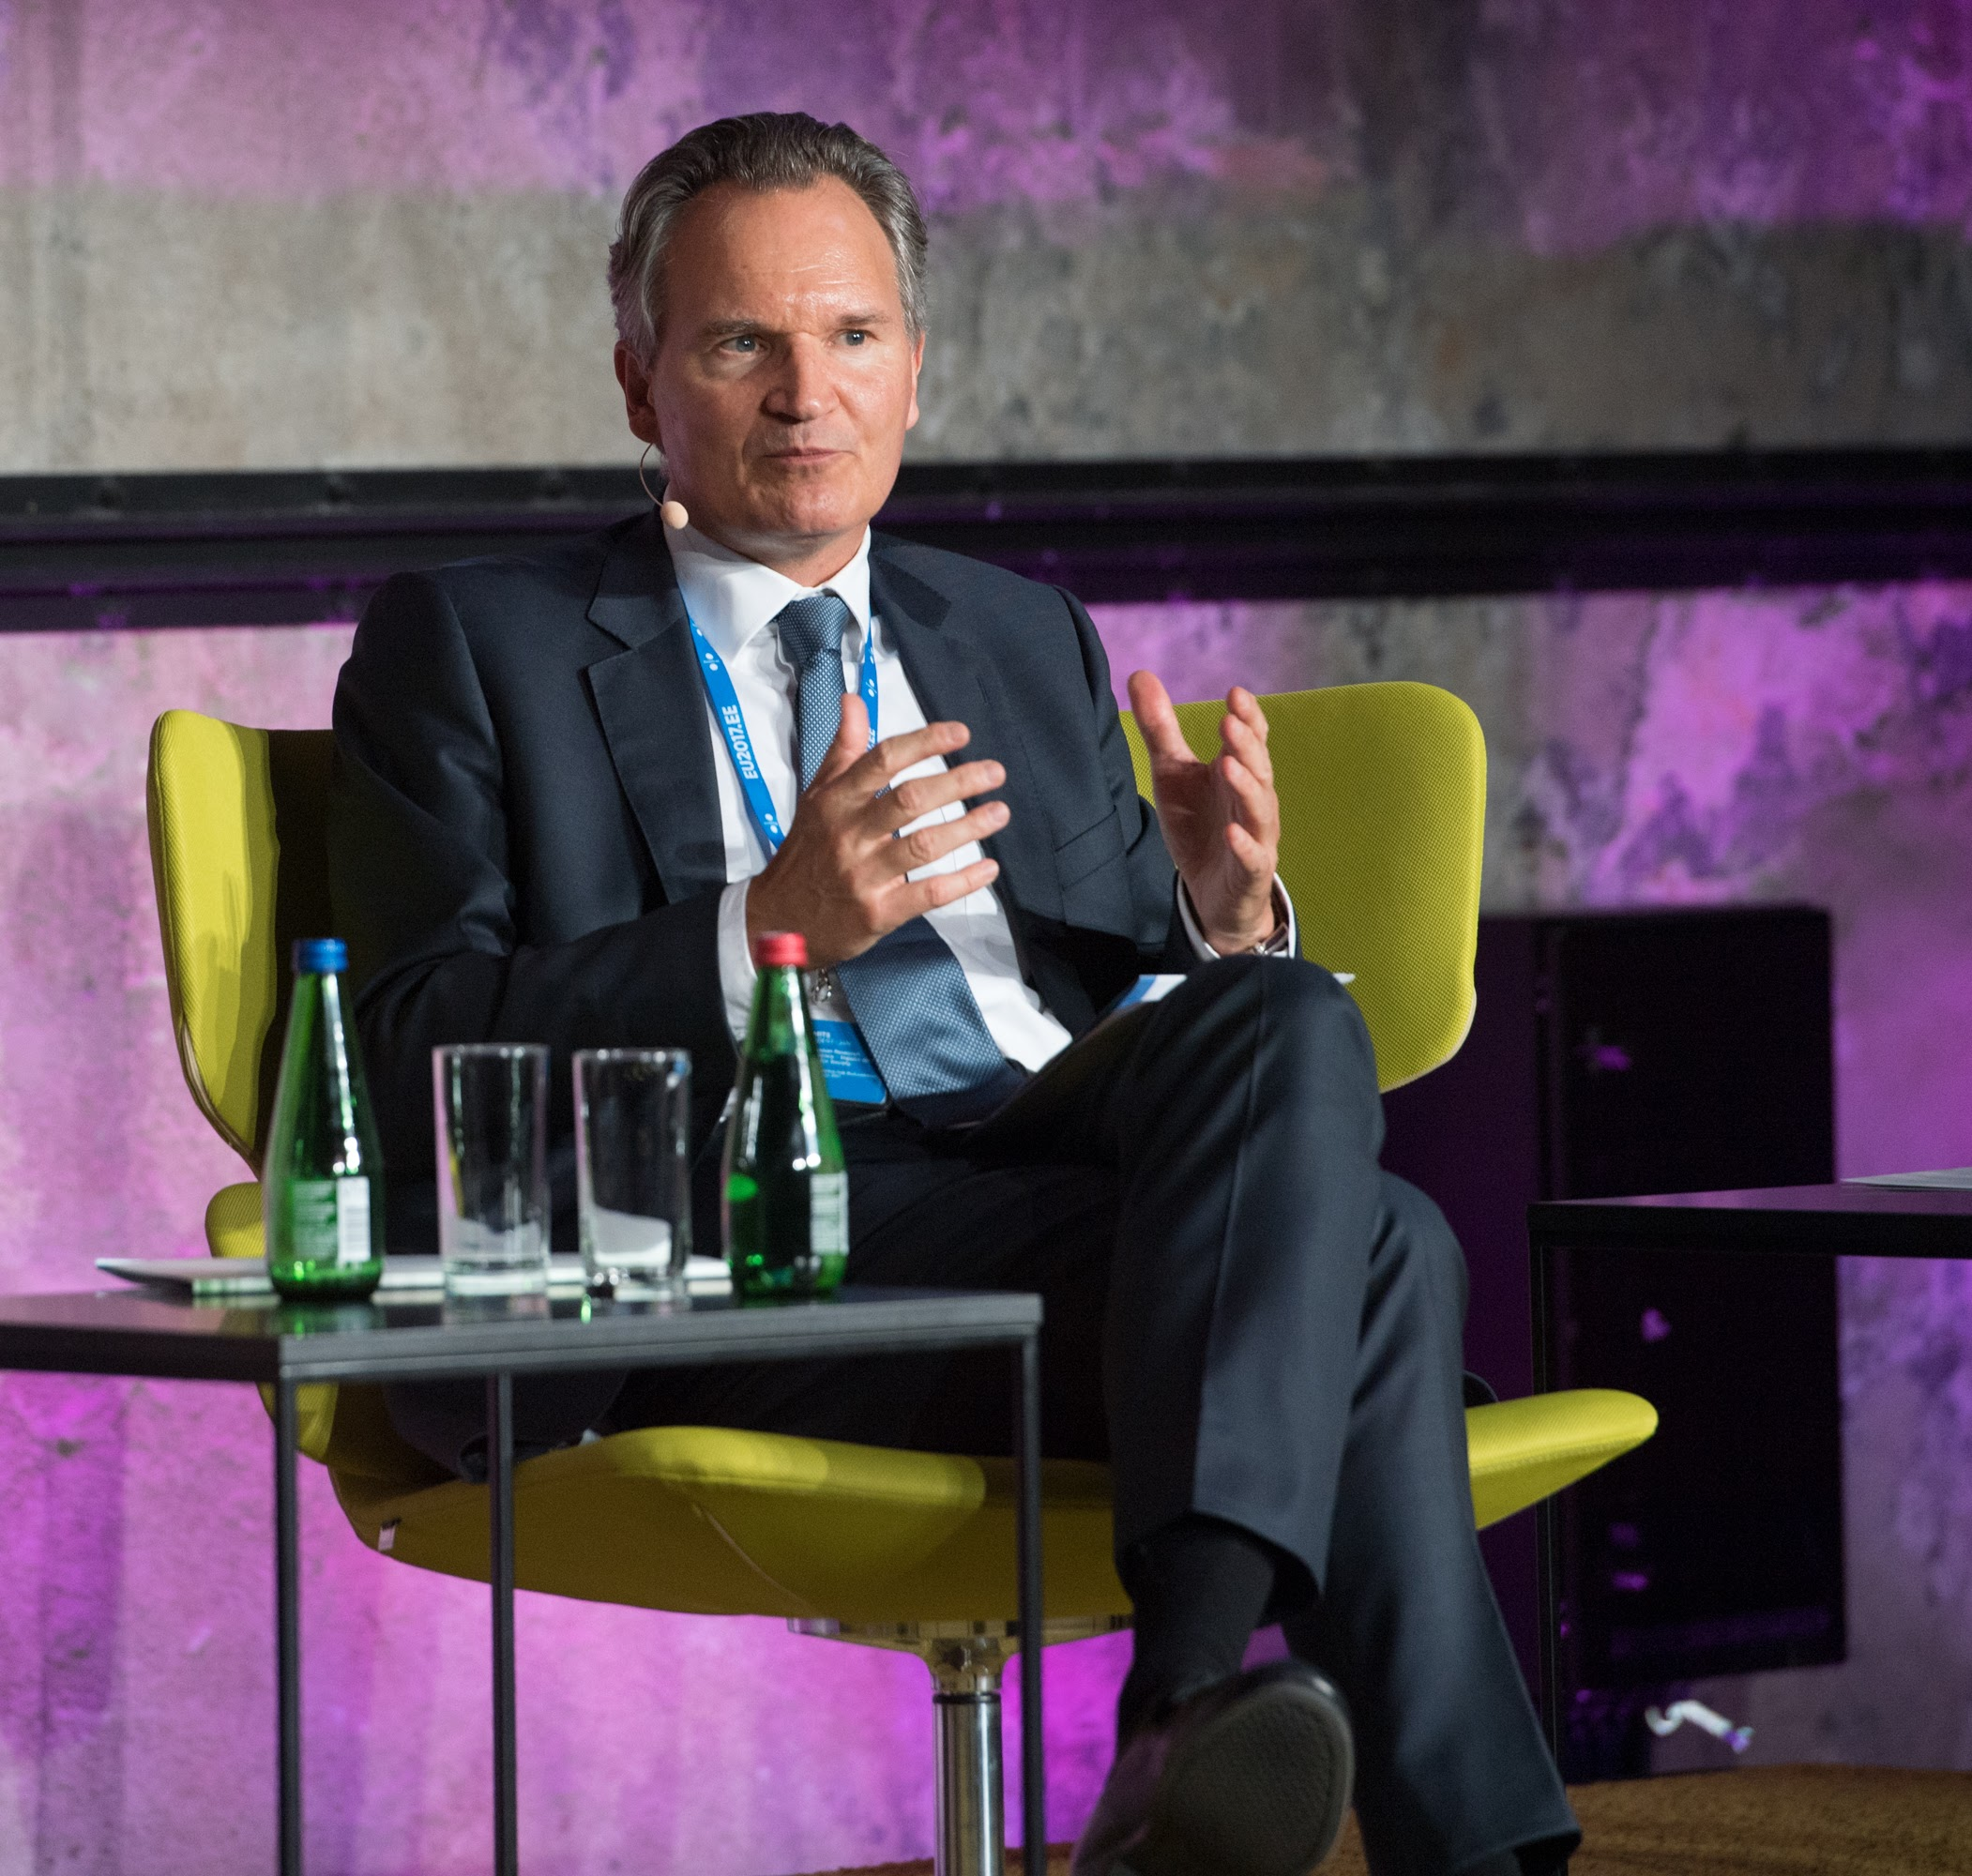 Robert-Jan  Smits, Director-General, Research & Innovation, European Commission